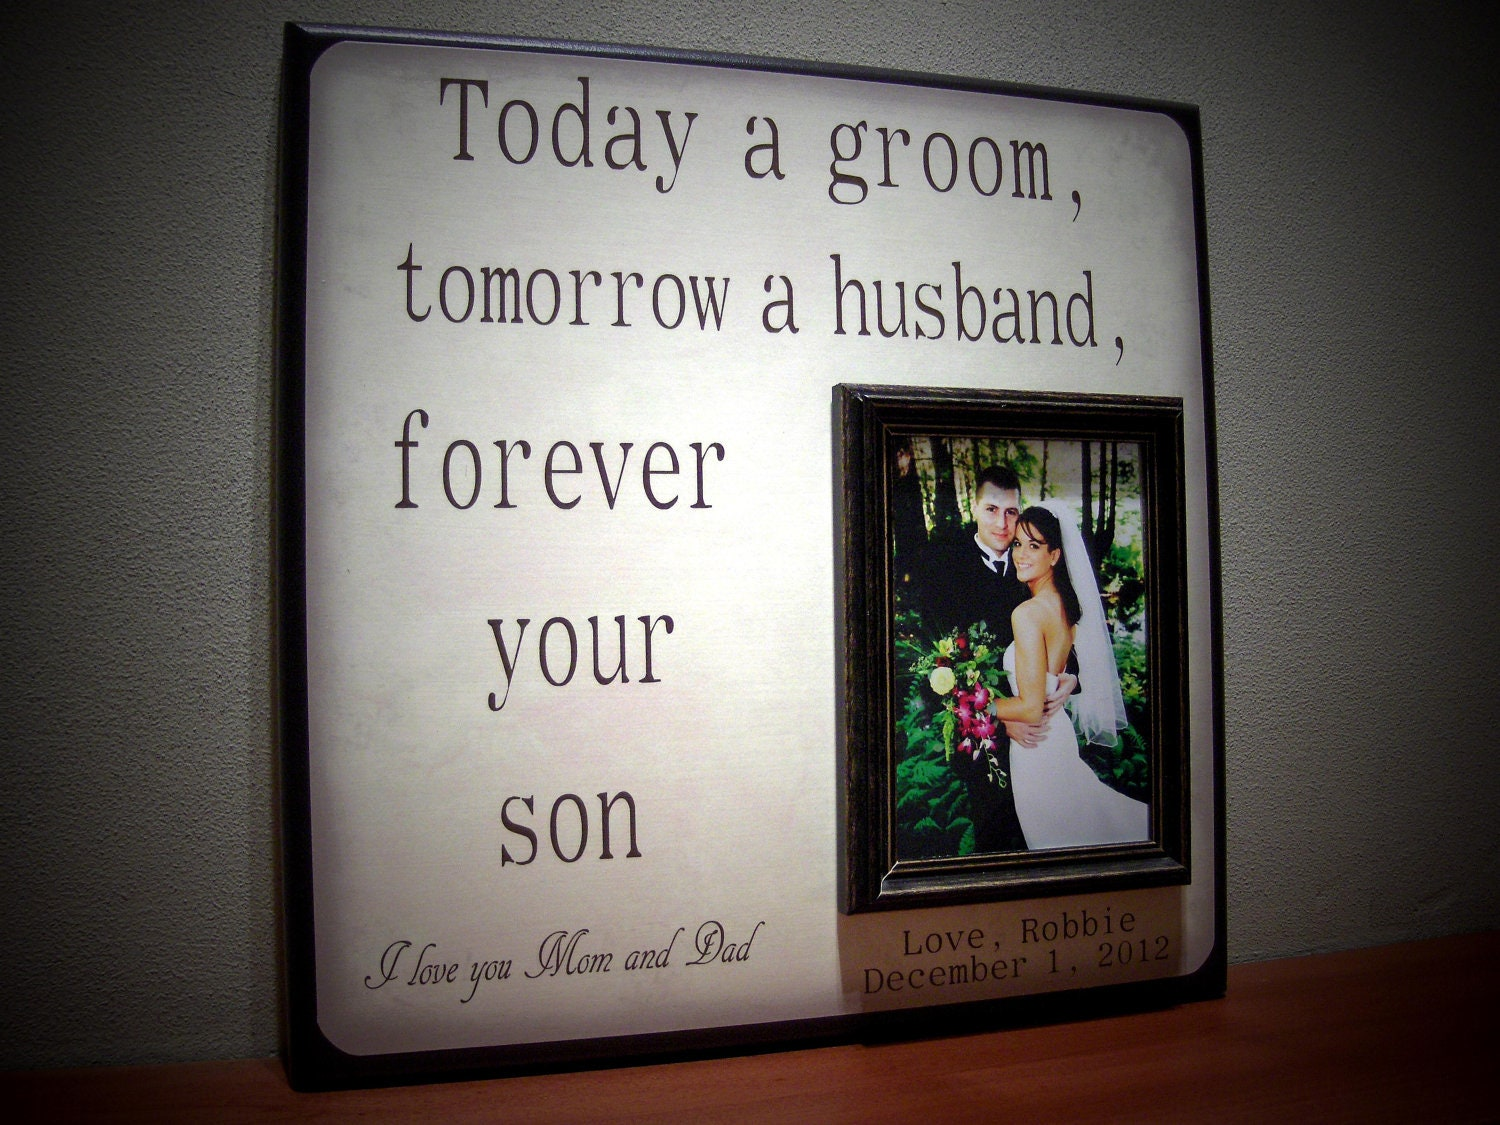 Thank You Wedding Gift Ideas For Parents : Mother of the Groom Gift Father of the Groom by YourPictureStory